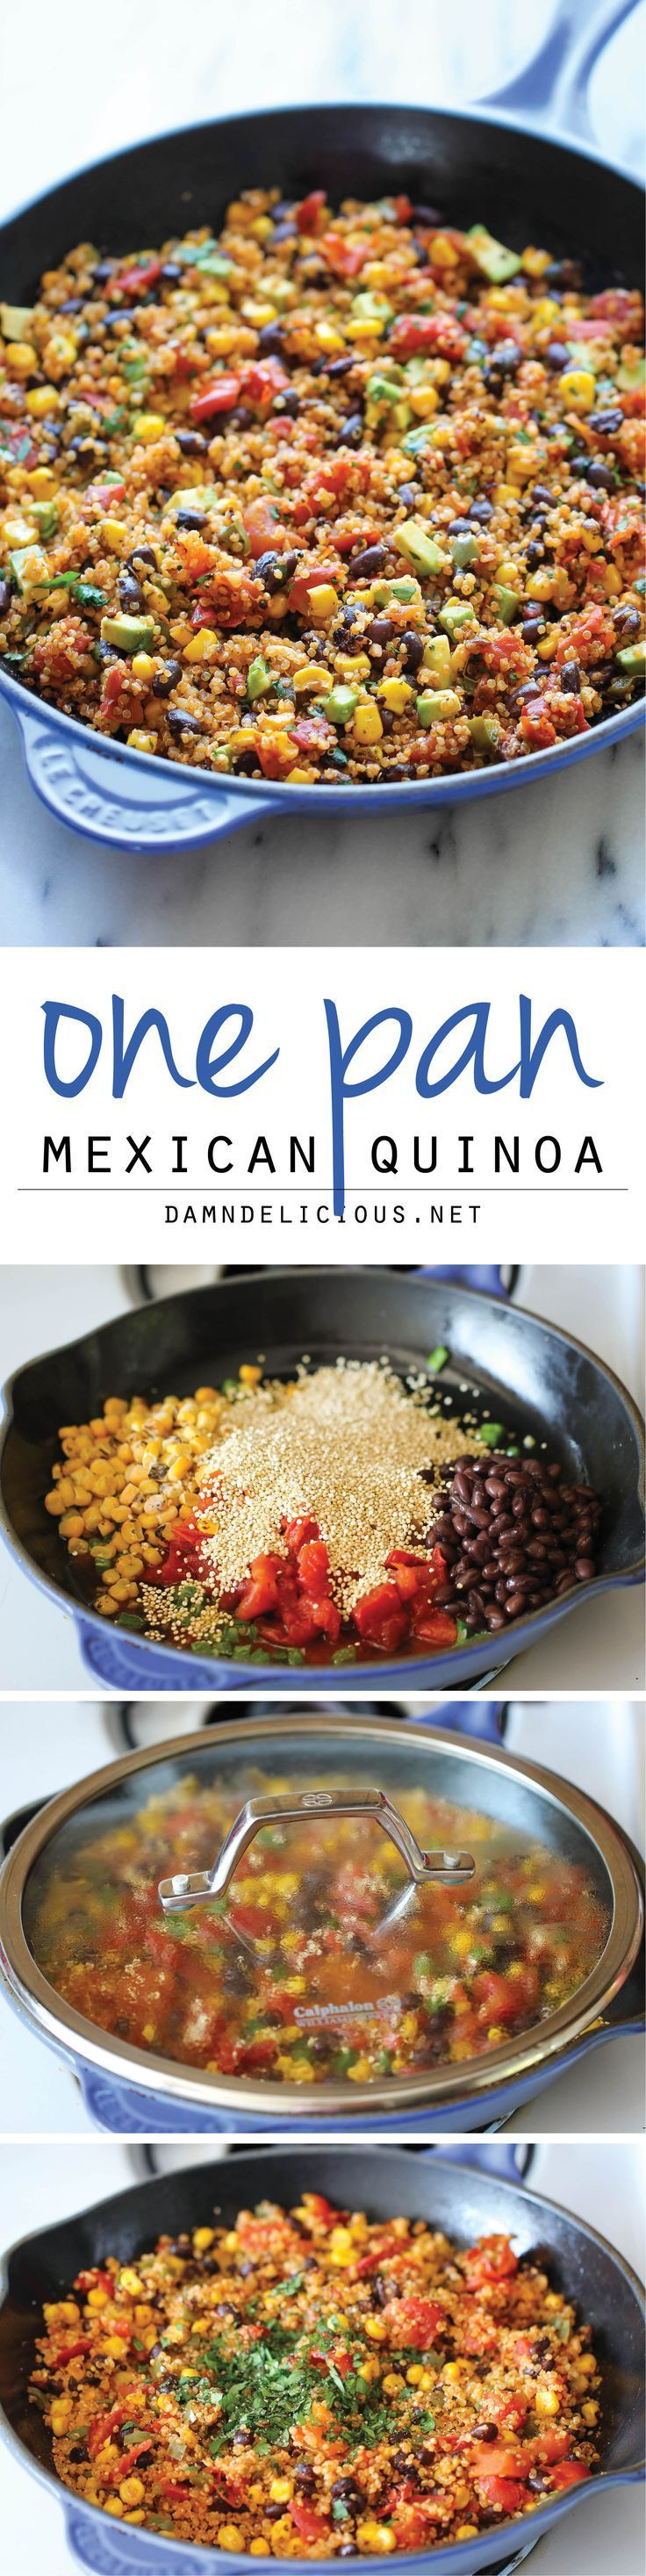 One Pan Mexican Quinoa - Wonderfully light, healthy and nutritious. And it's so easy to make - even the quinoa is cooked right in the pan!